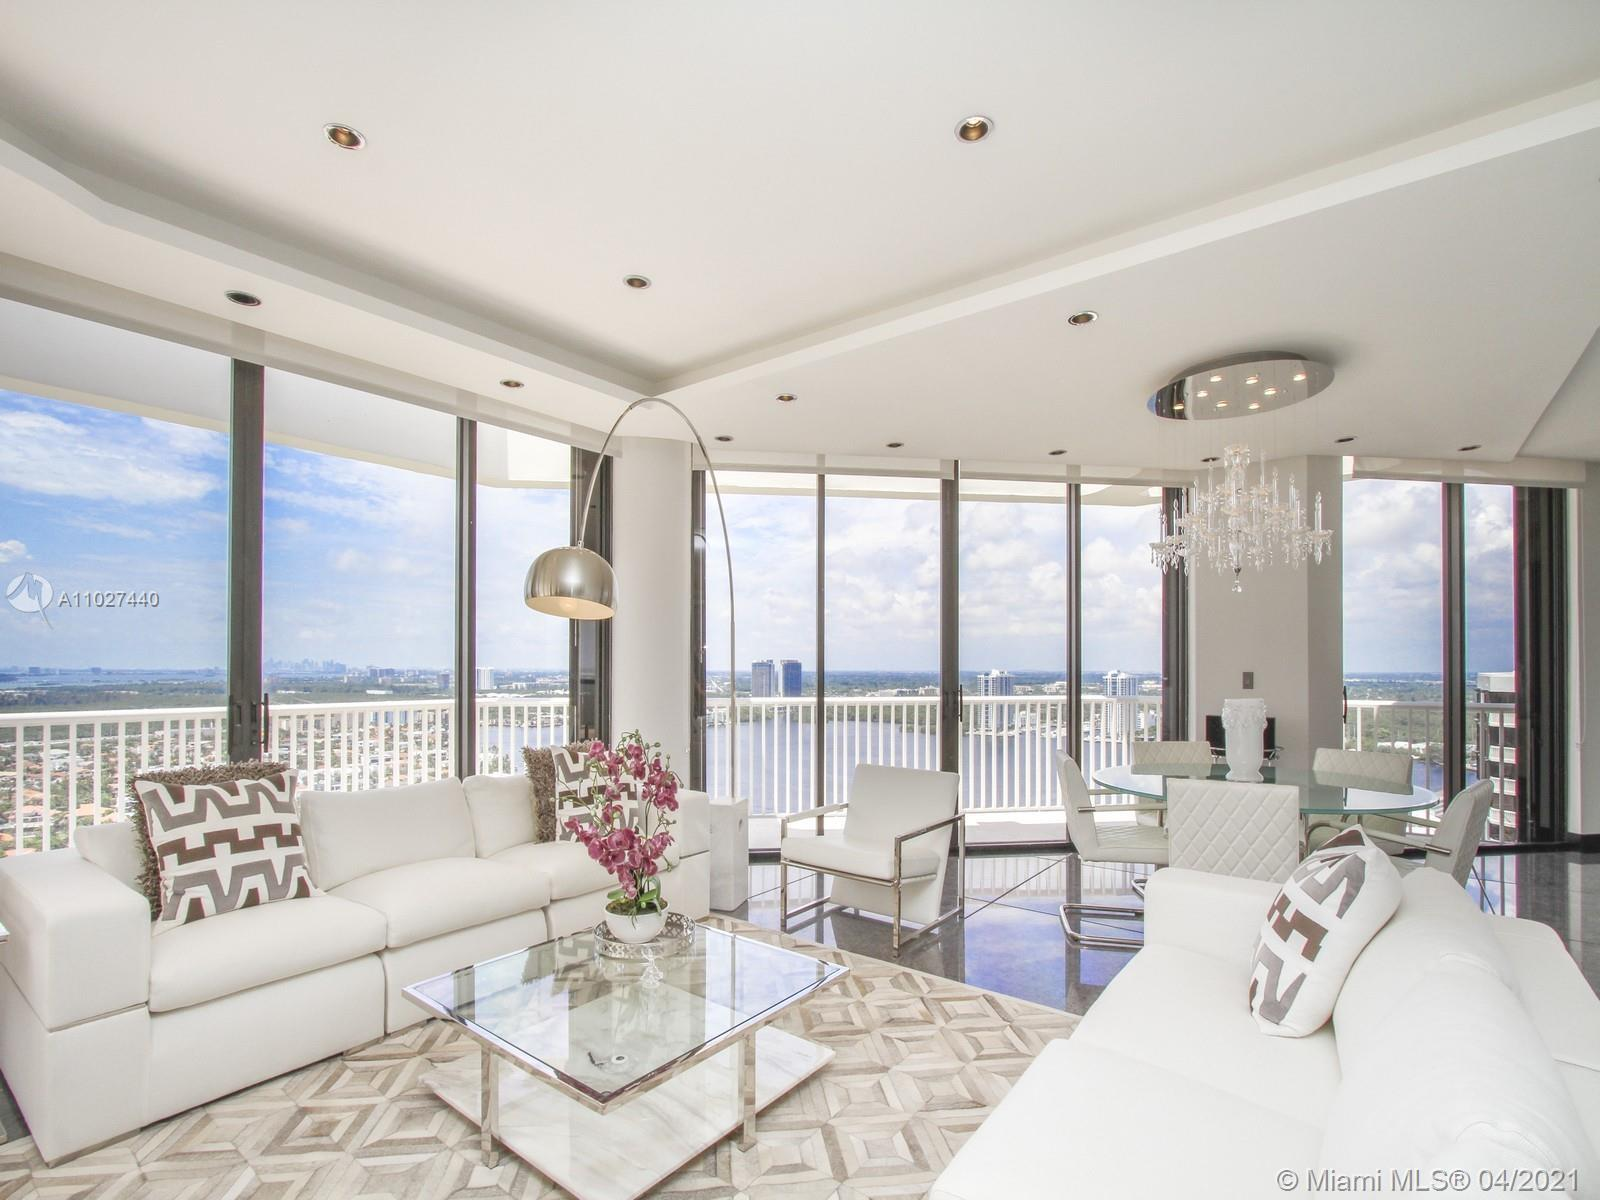 SPECTACULAR 2 STORY FULLY FURNISHED 3 BEDROOM 4 /5 BATHROOM PENTHOUSE! RECENTLY RENOVATED AND DESIGN